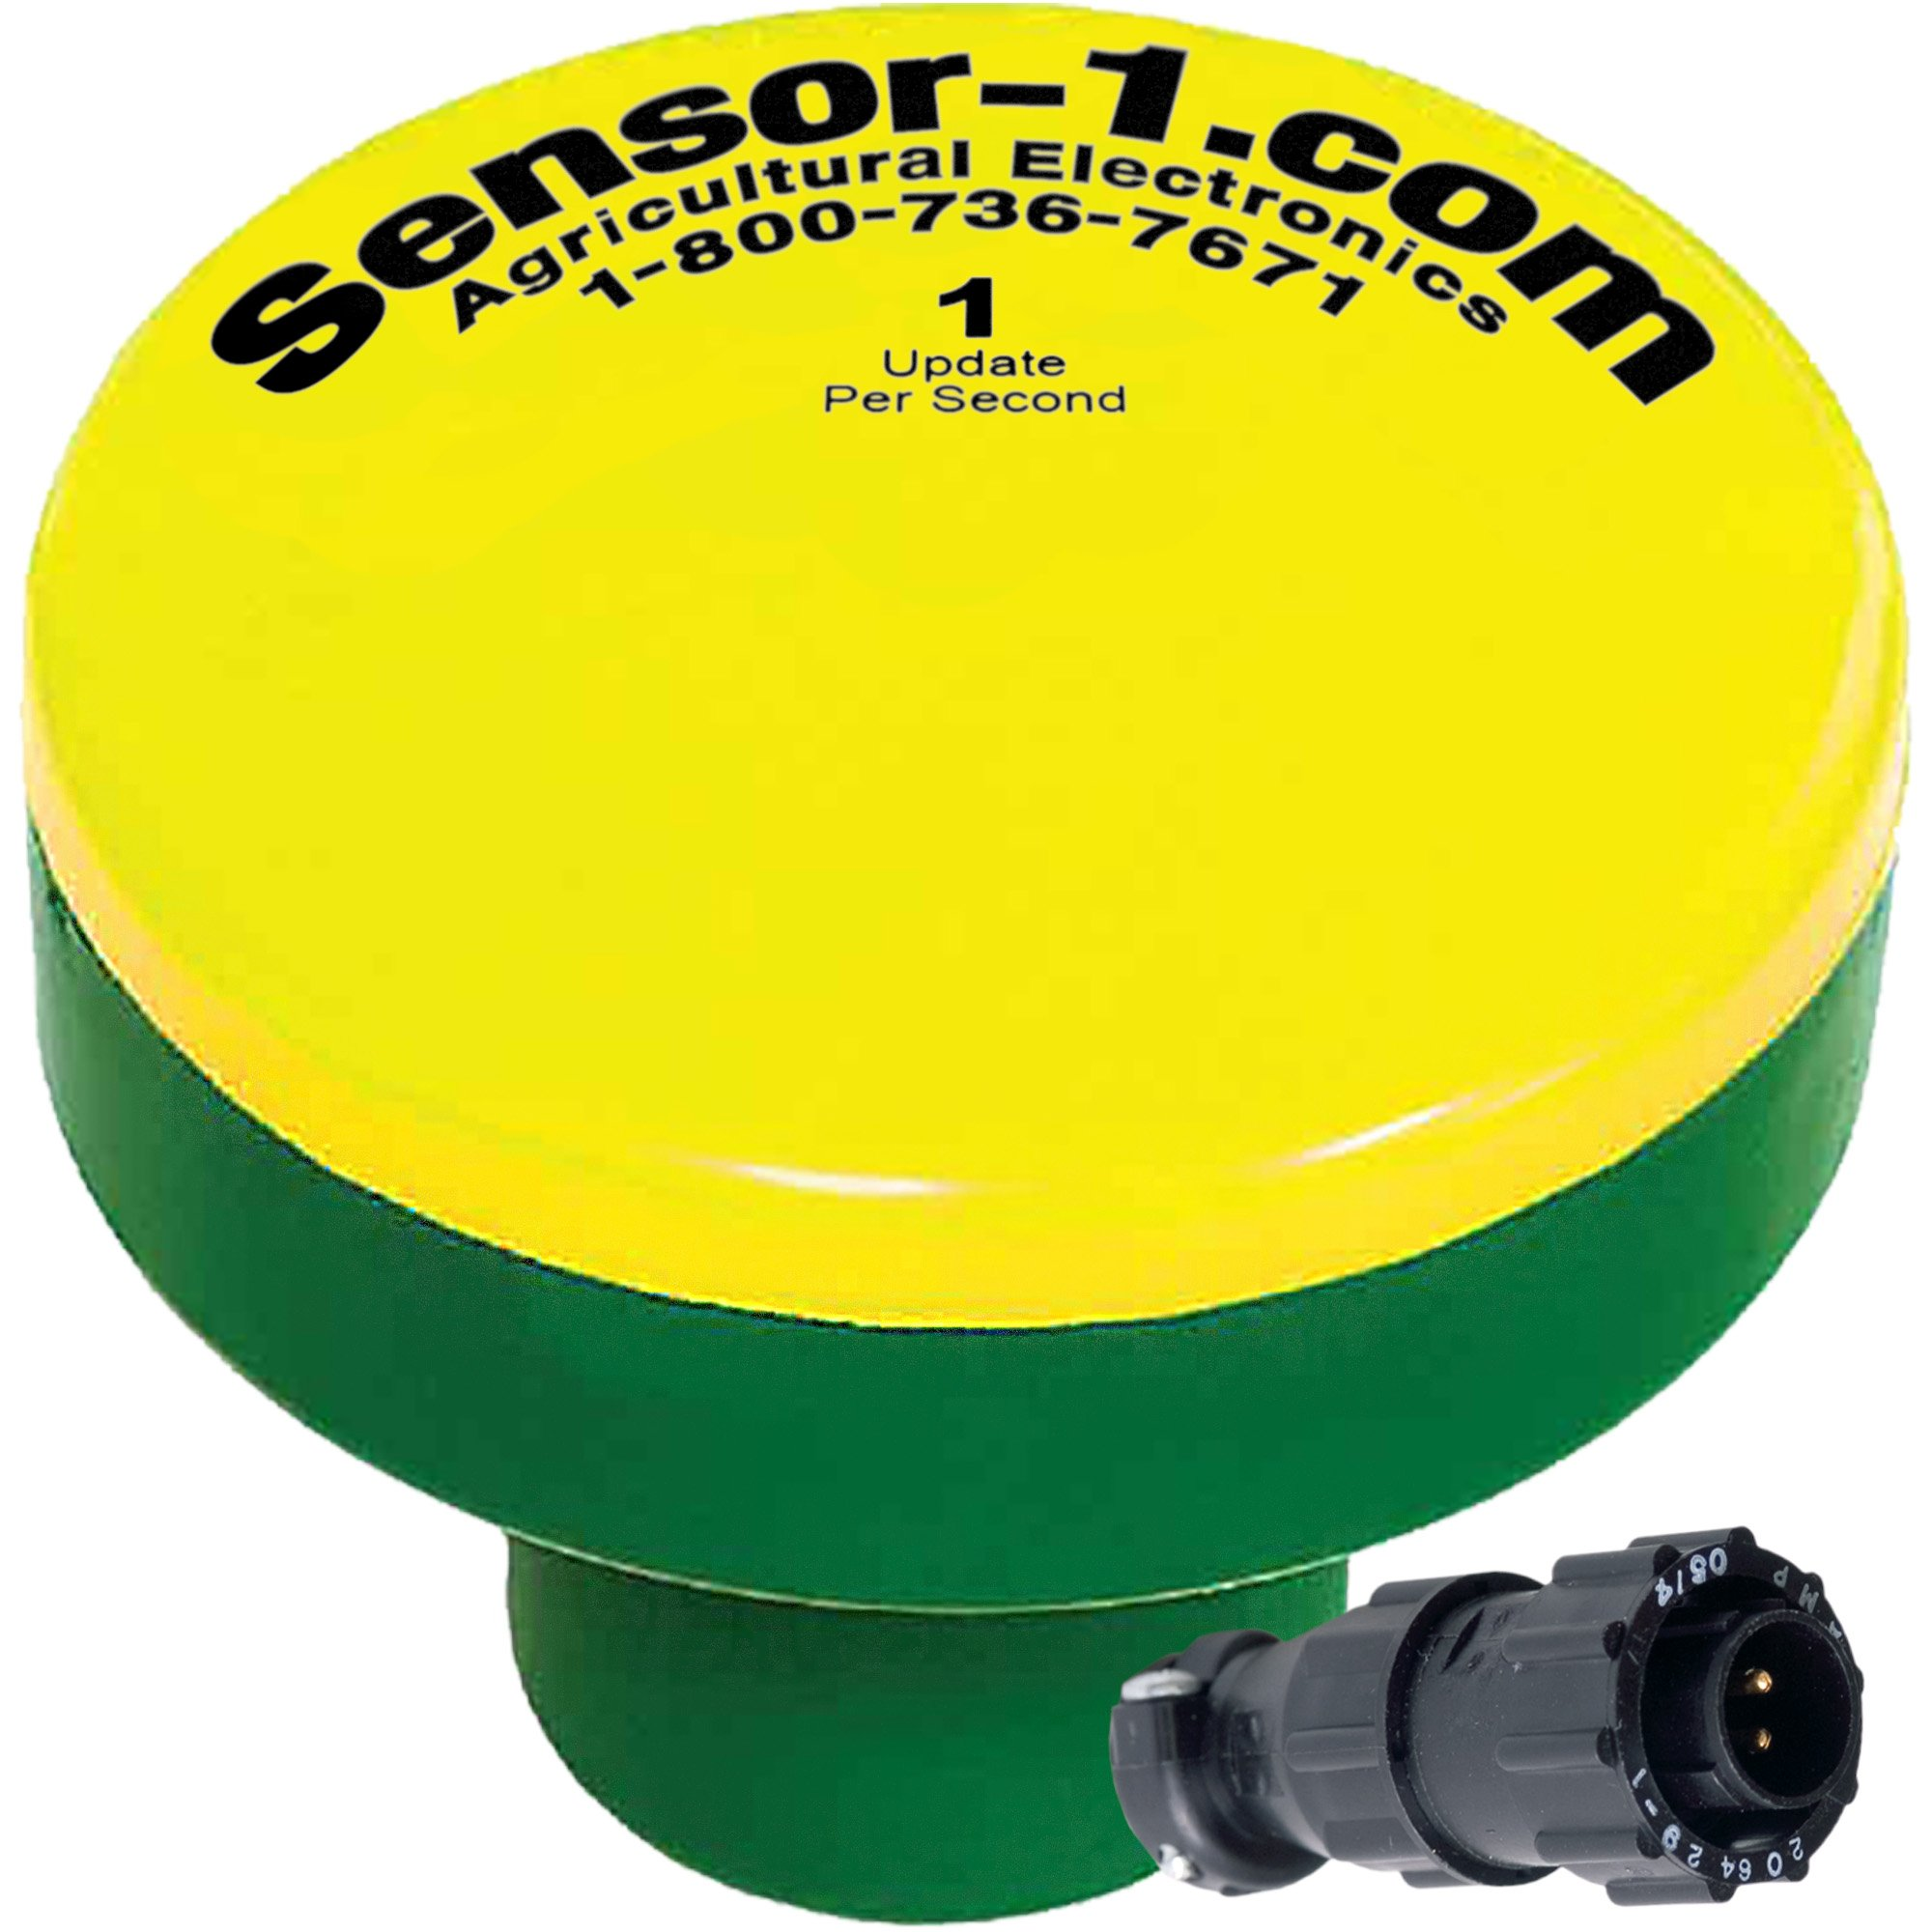 Sensor-1 DS-GPSM-D1-Y/G 1 Hz GPS Speed Sensor, Yellow Top and Green Stem Housing with 4 Pin Amp Connector by Sensor-1